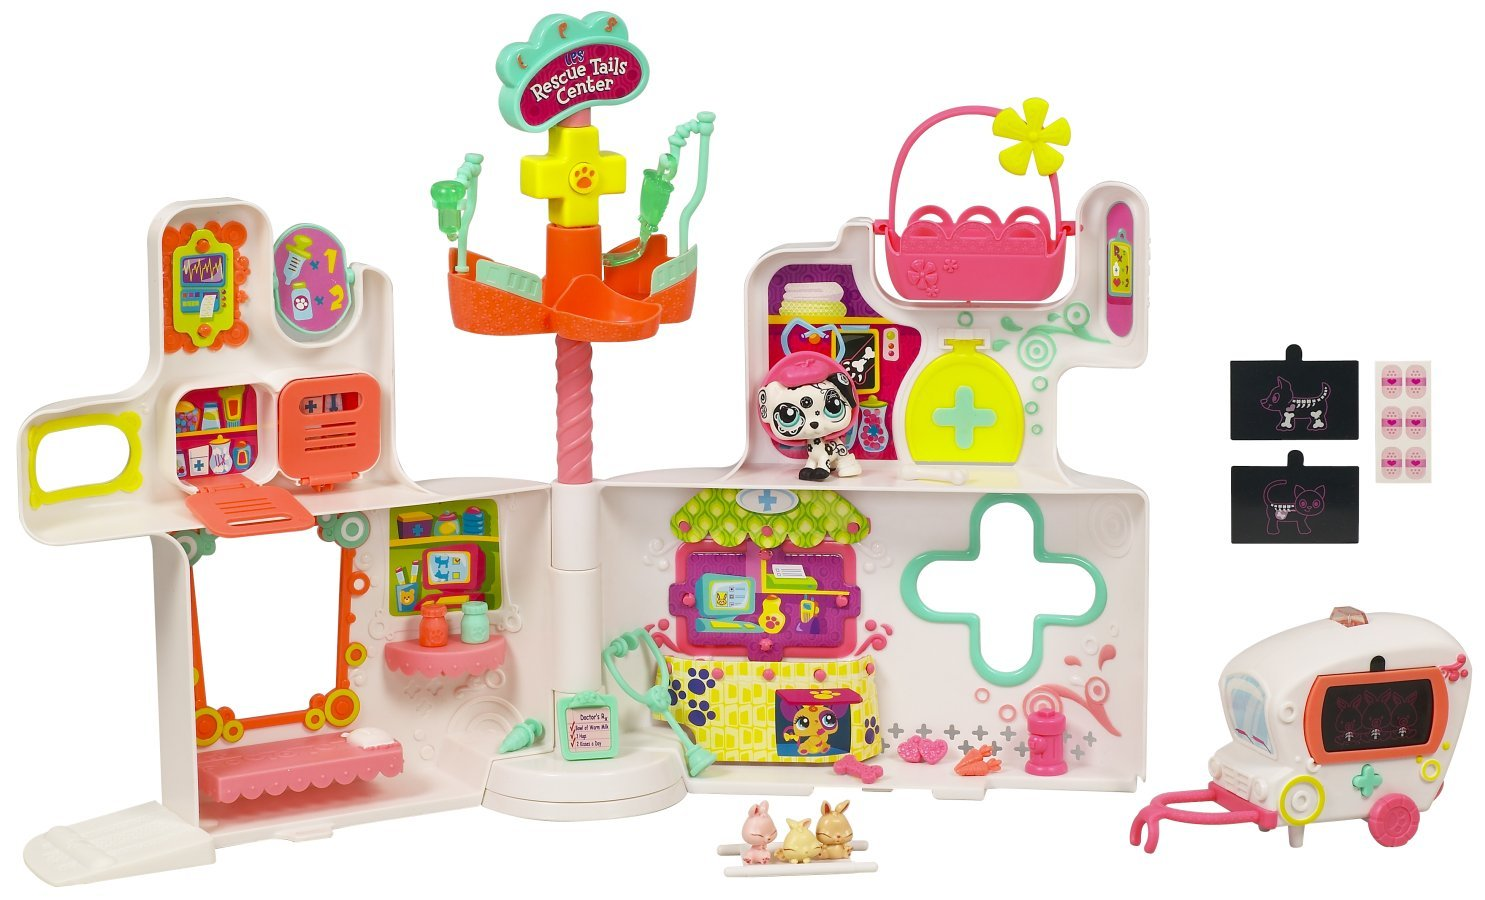 Salle De Bain Beton Bois ~ littlest pet shop playset rescue tails center amazon fr jeux et